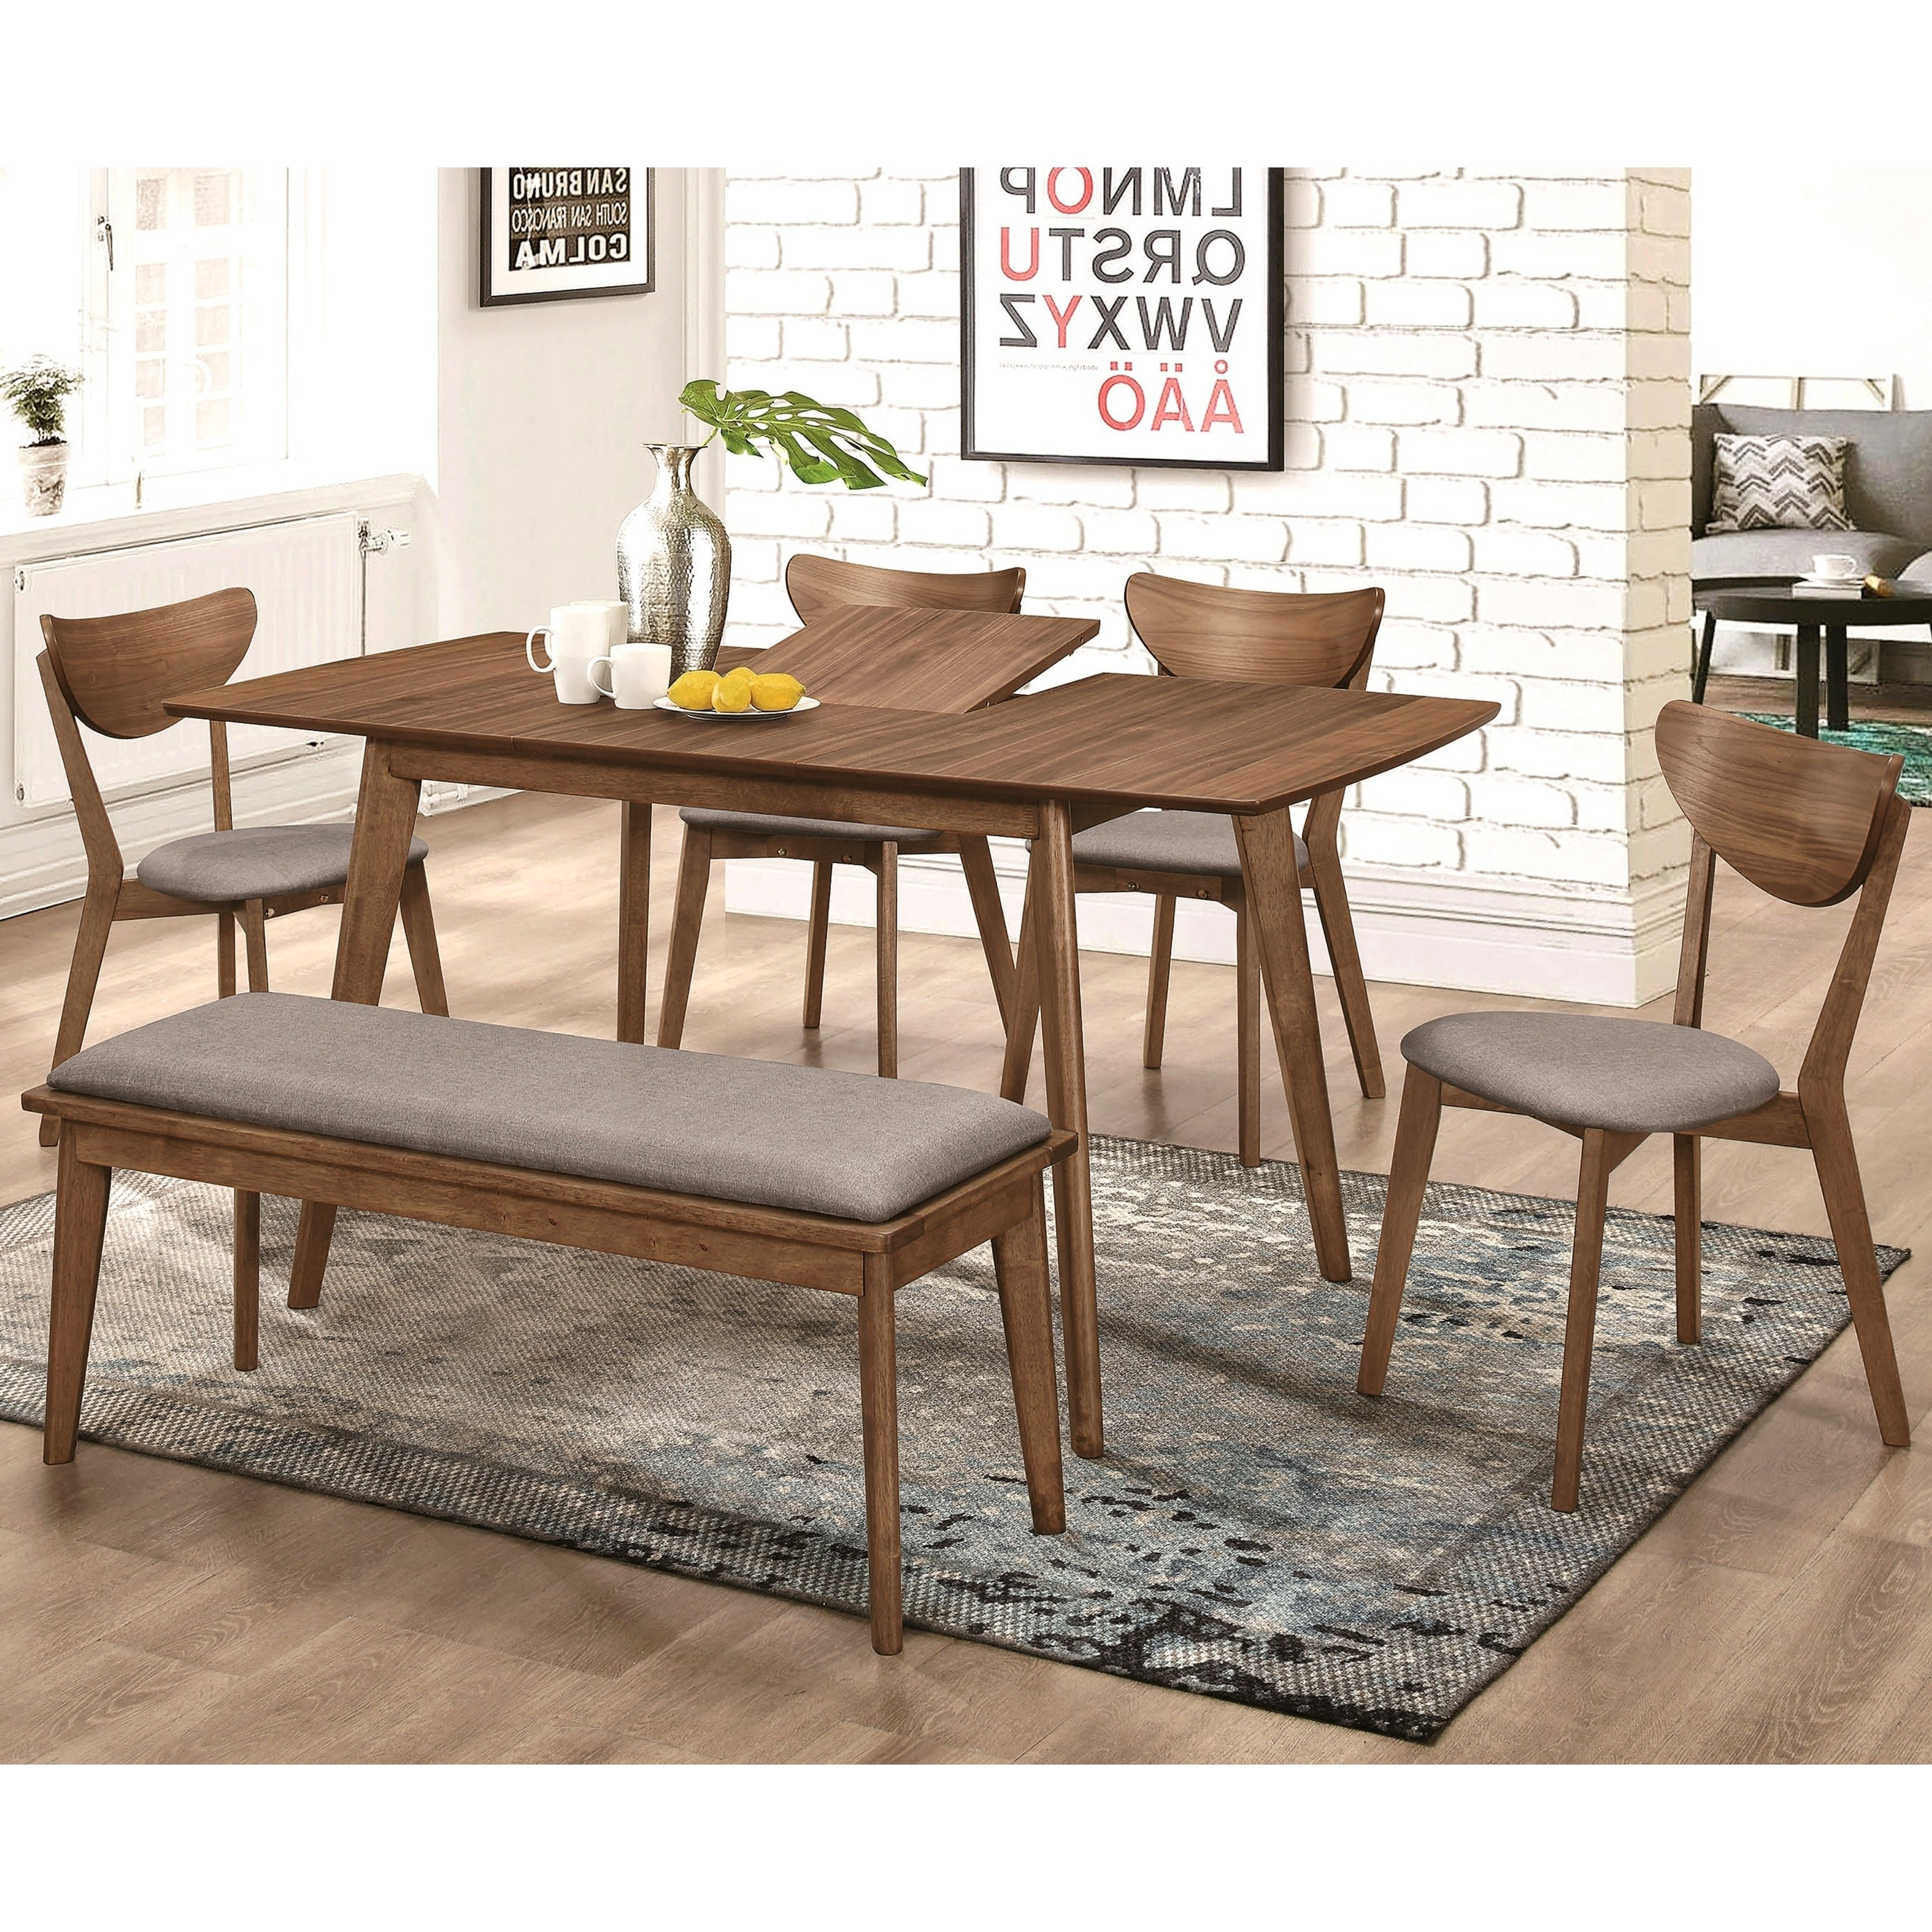 Buy 6 Piece Sets Kitchen & Dining Room Sets Online At Overstock With Best And Newest Osterman 6 Piece Extendable Dining Sets (Set Of 6) (View 1 of 25)